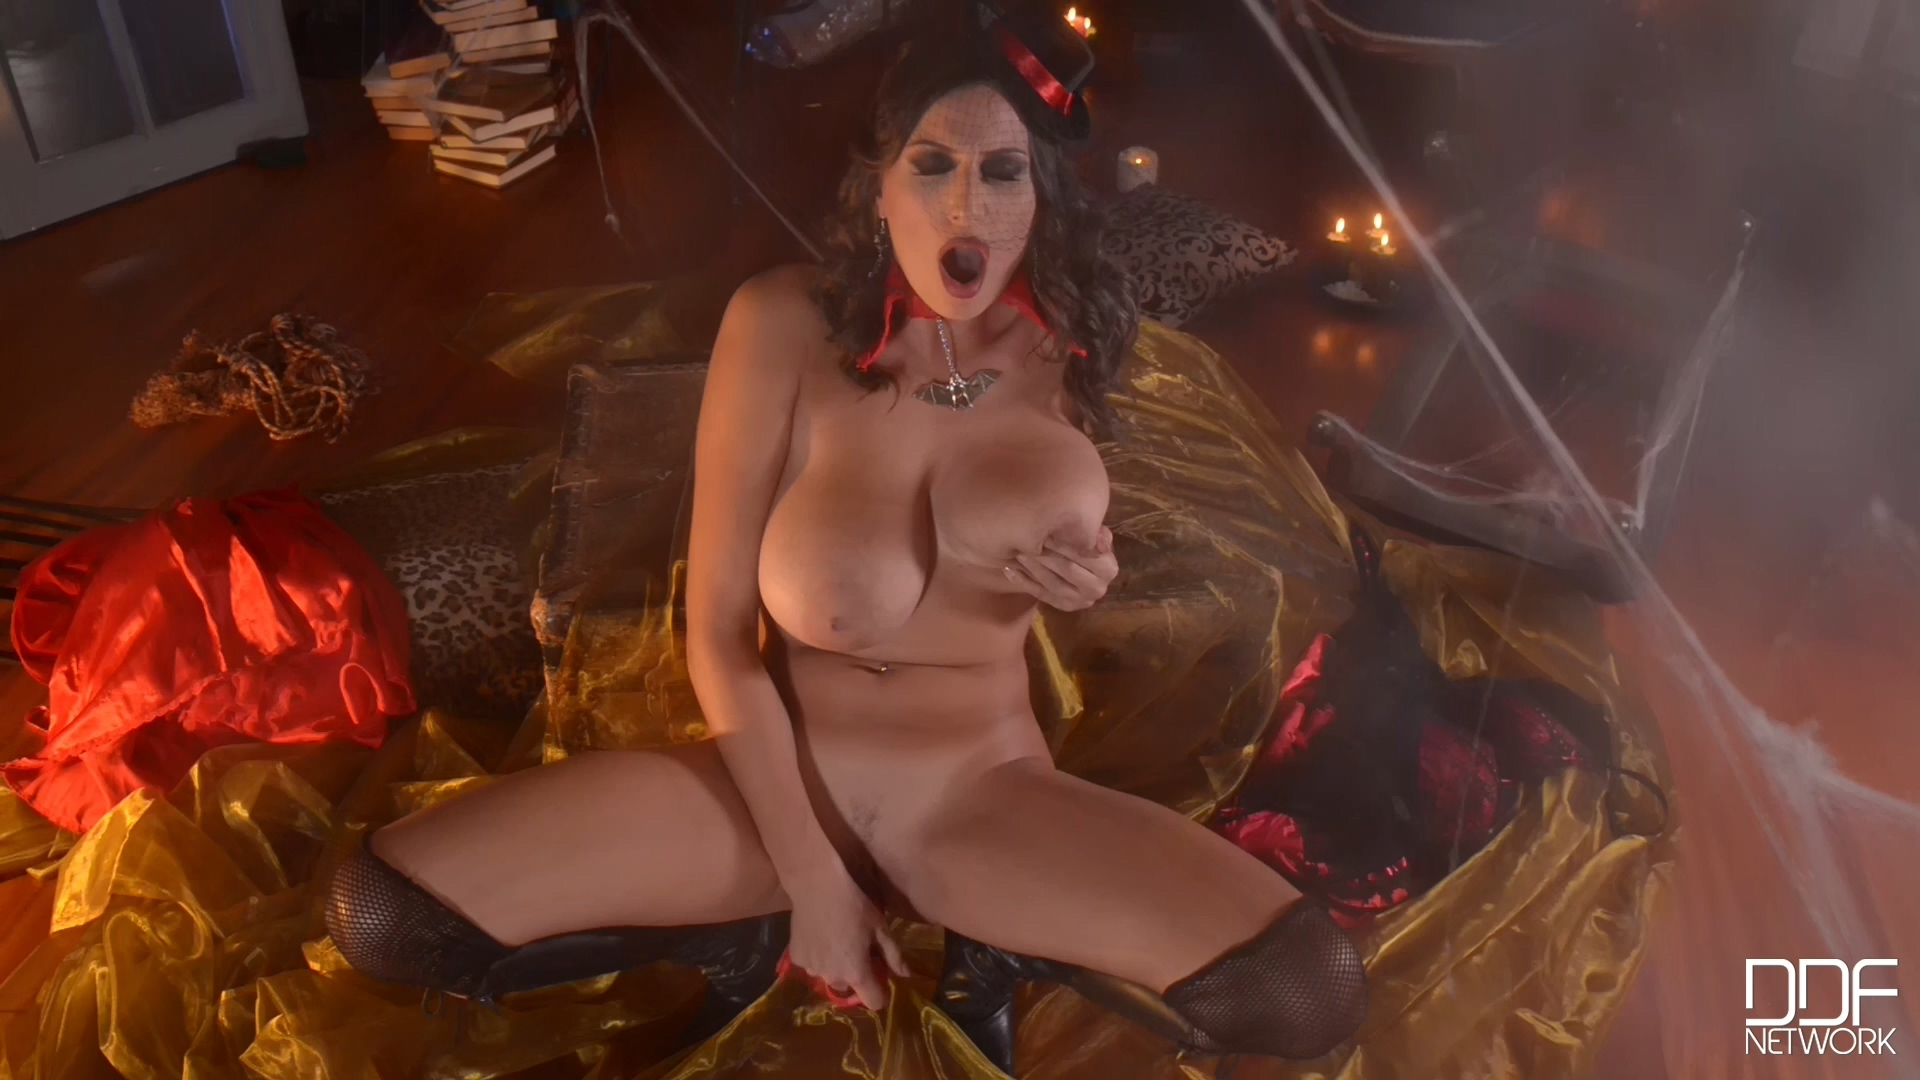 DDFBusty - 2014 Her Tricky Treat [solo] 1080p.mp4_20201217_221500.859.jpg